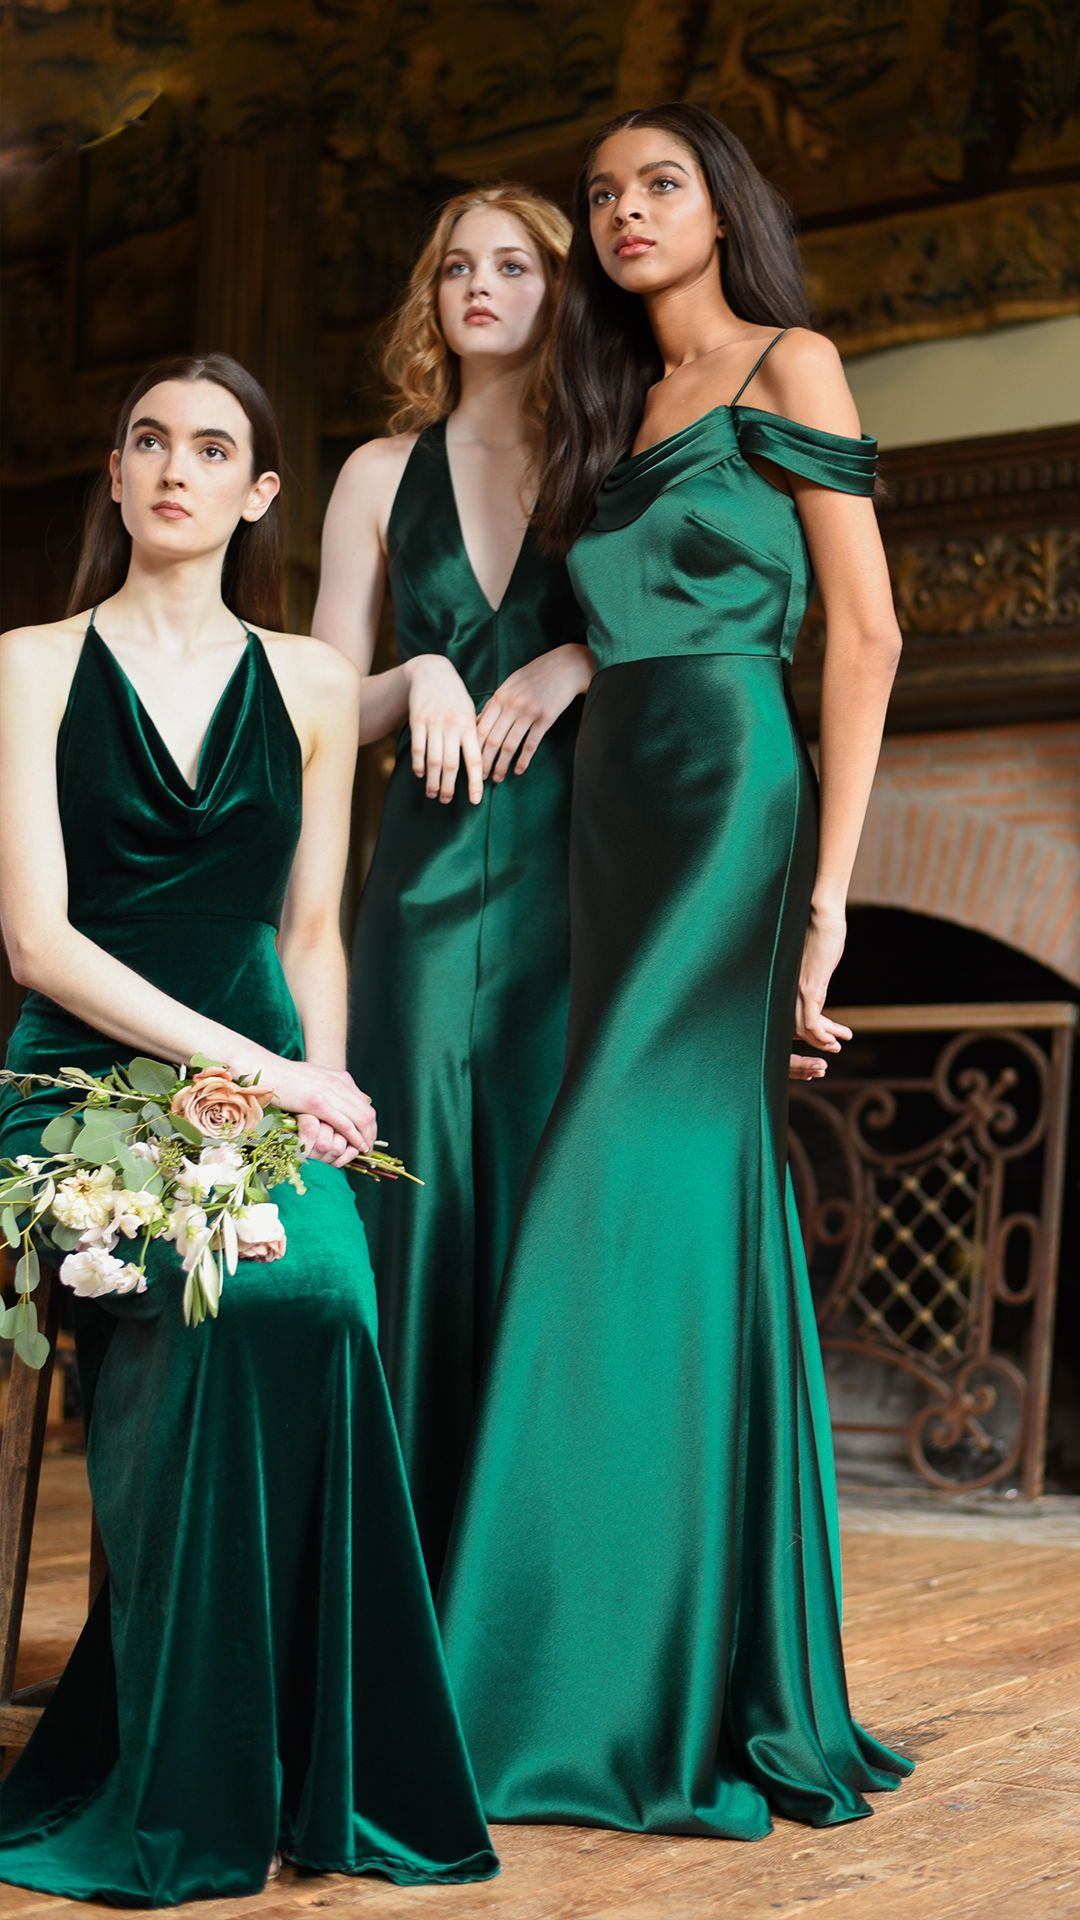 Tea Length Bridesmaid Dresses Emerald Green Bridesmaid Dresses Weddin Emerald Green Bridesmaid Dresses Green Bridesmaid Dresses Tea Length Bridesmaid Dresses